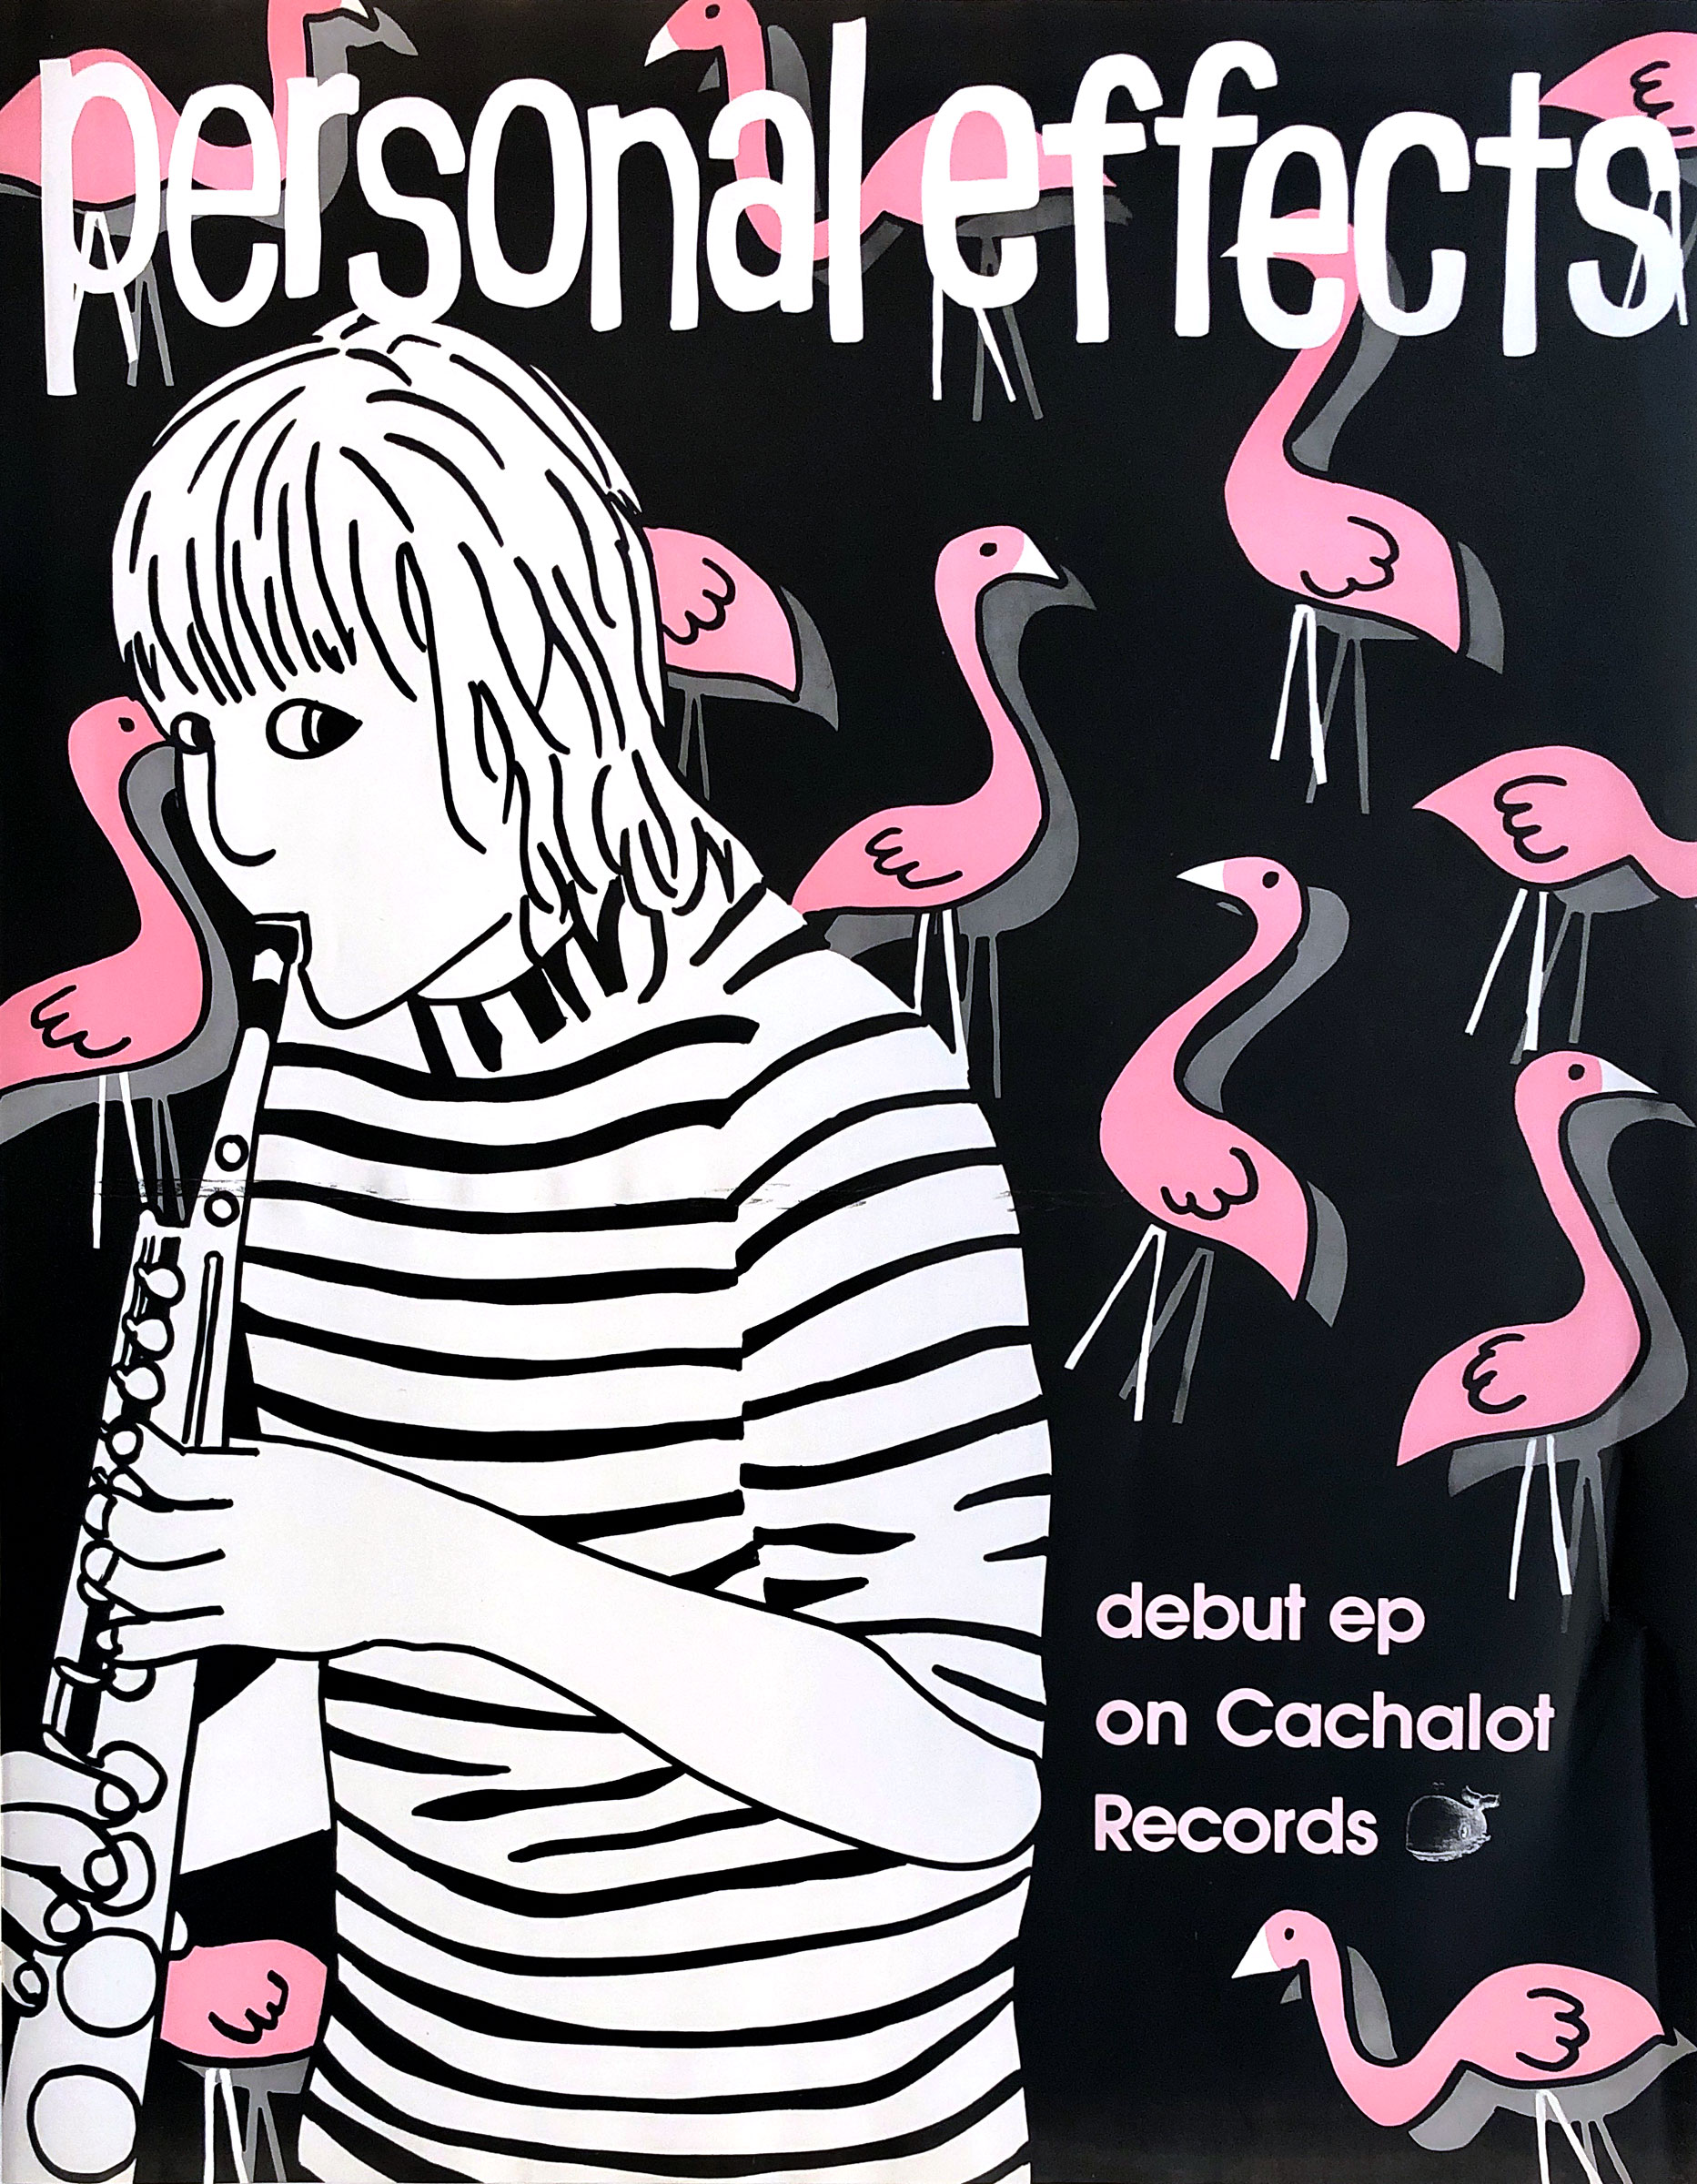 Promotional poster for Personal Effects self-titled debut EP on Cachalot Records